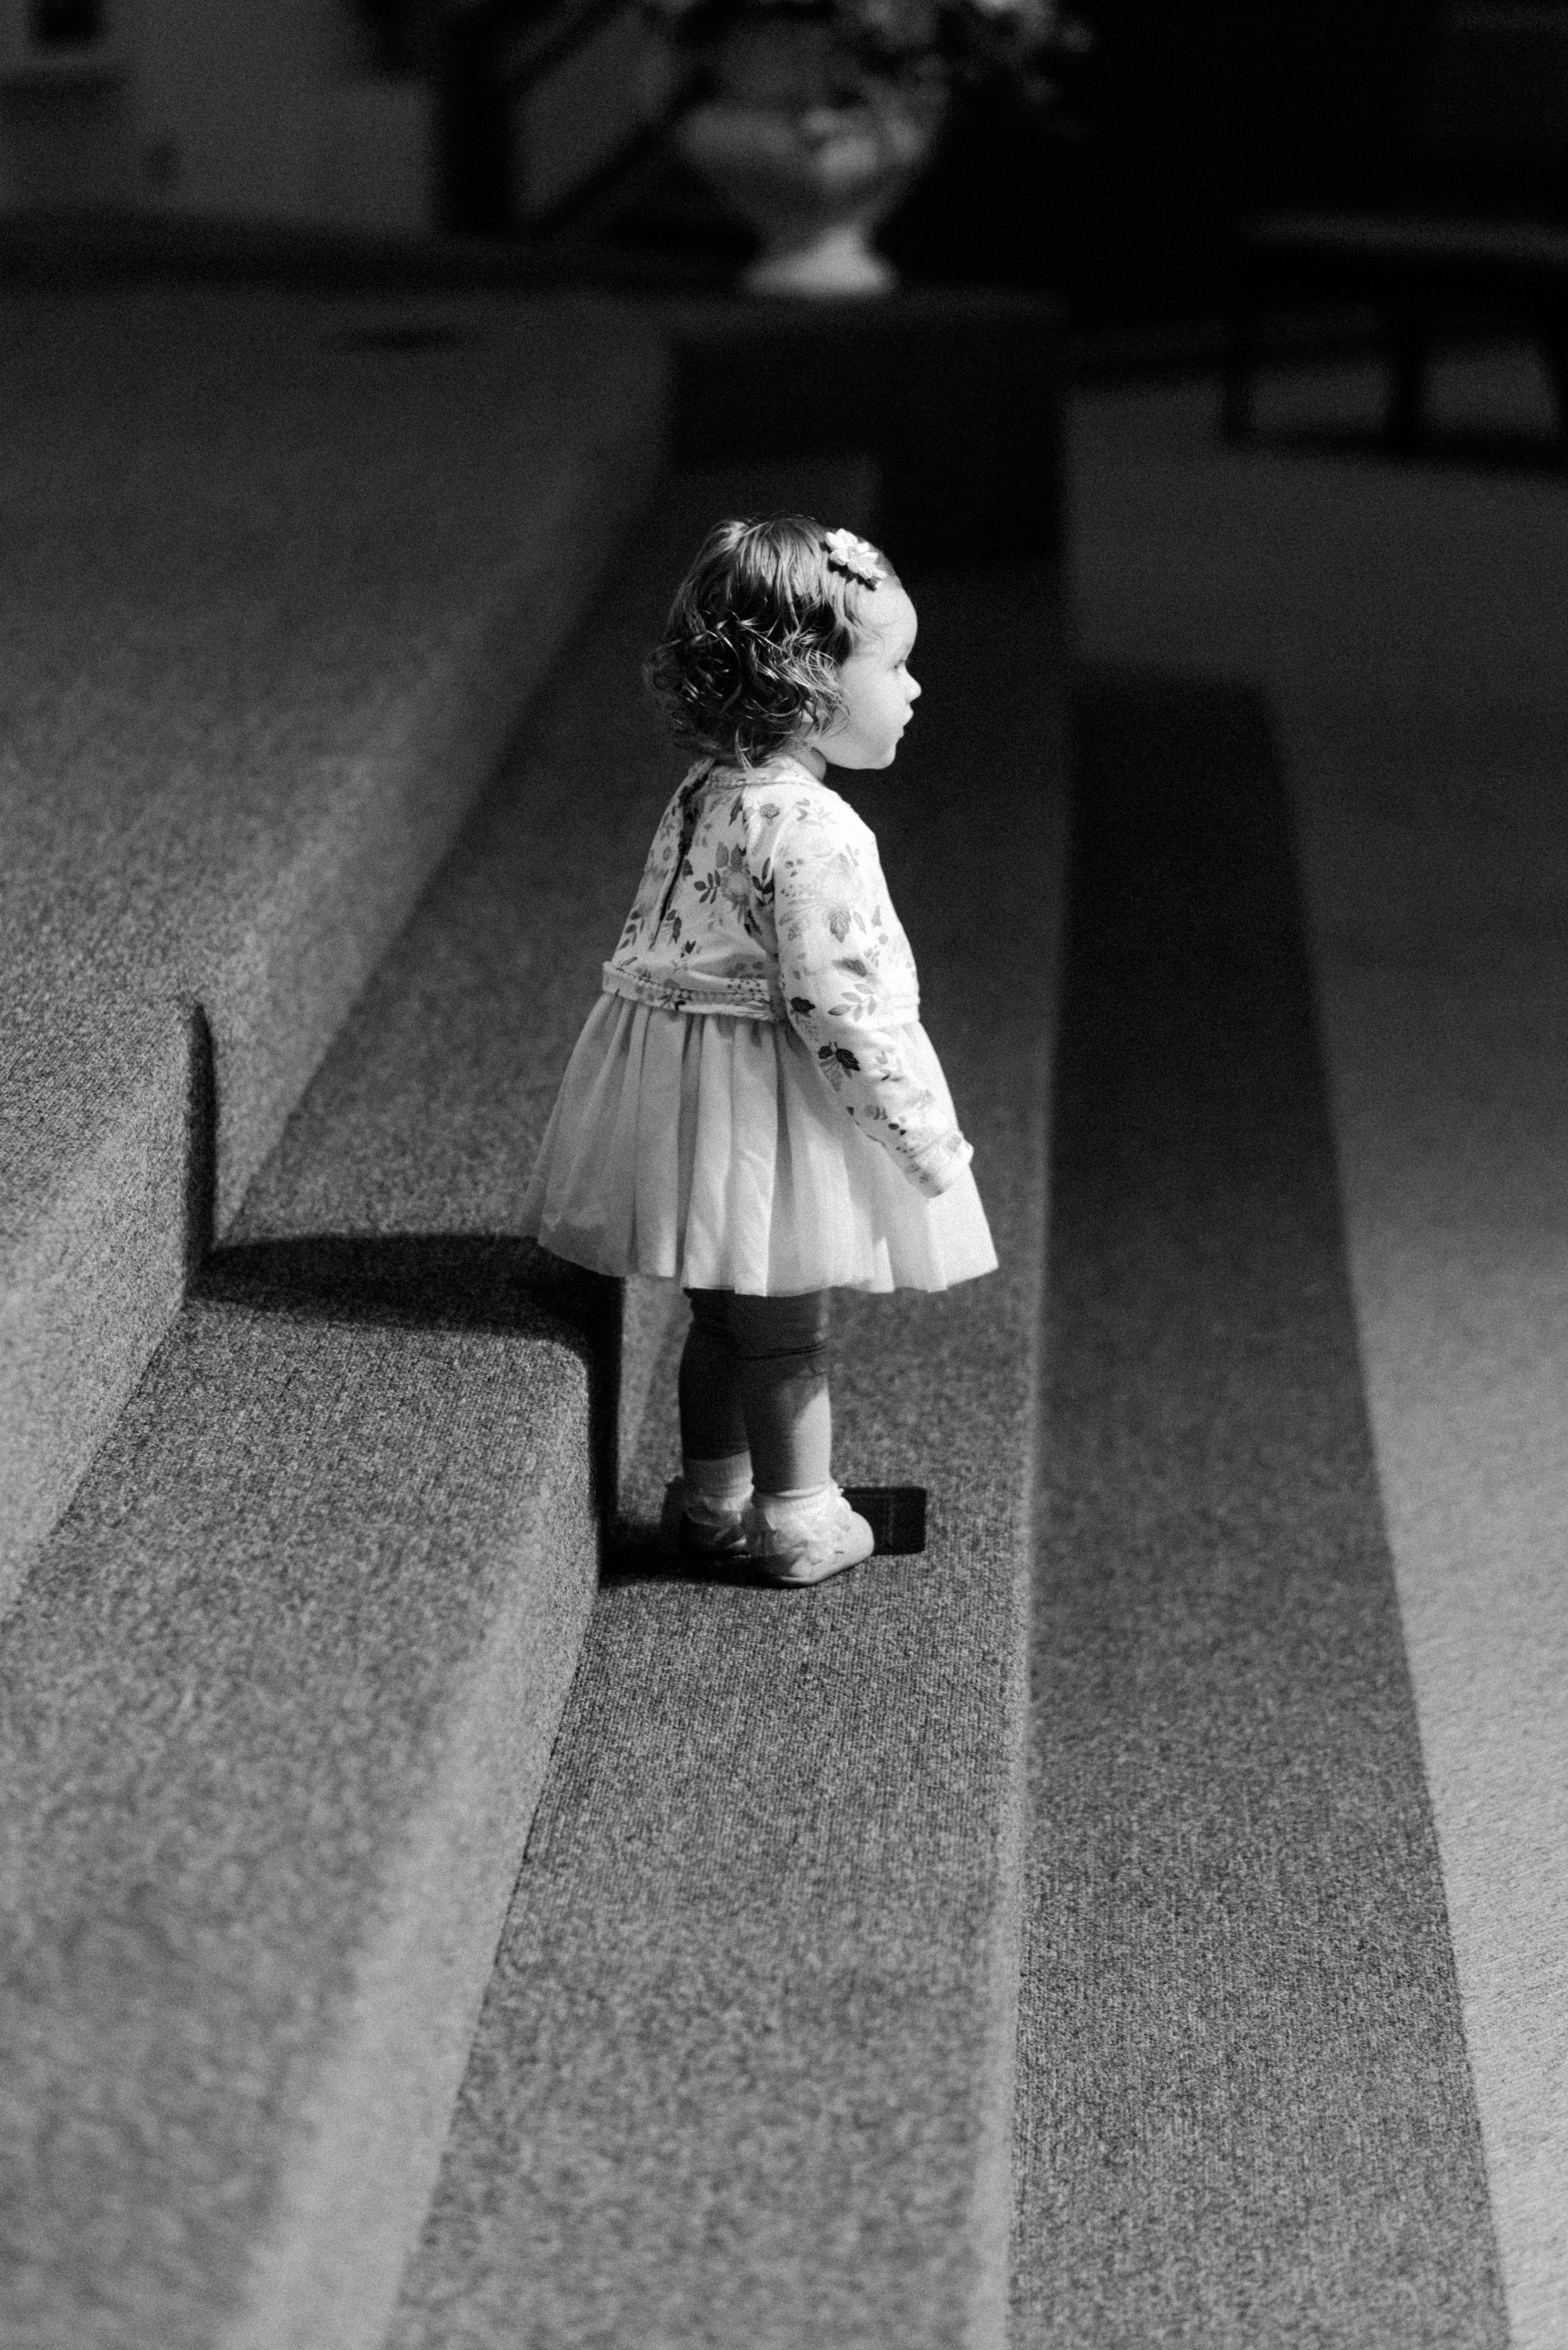 "The Richards Wedding - February 2018  Once again, the moments right before a wedding ceremony are invigorating to capture. ""You never know what you're gonna get!"" At this particular wedding, this sweet little gal kept making her way up to the front of the church to climb up and down the steps, over and over. It was super cute, and she really entertained us all while we waited for the ceremony to begin. I think what I enjoy most about this picture are the directional lines and pattern(s) that were created by the steps and the shadows casted by the lights above. The eye is drawn directly to the little girl, and her expression is inquisitive. It makes you wonder what she was thinking."